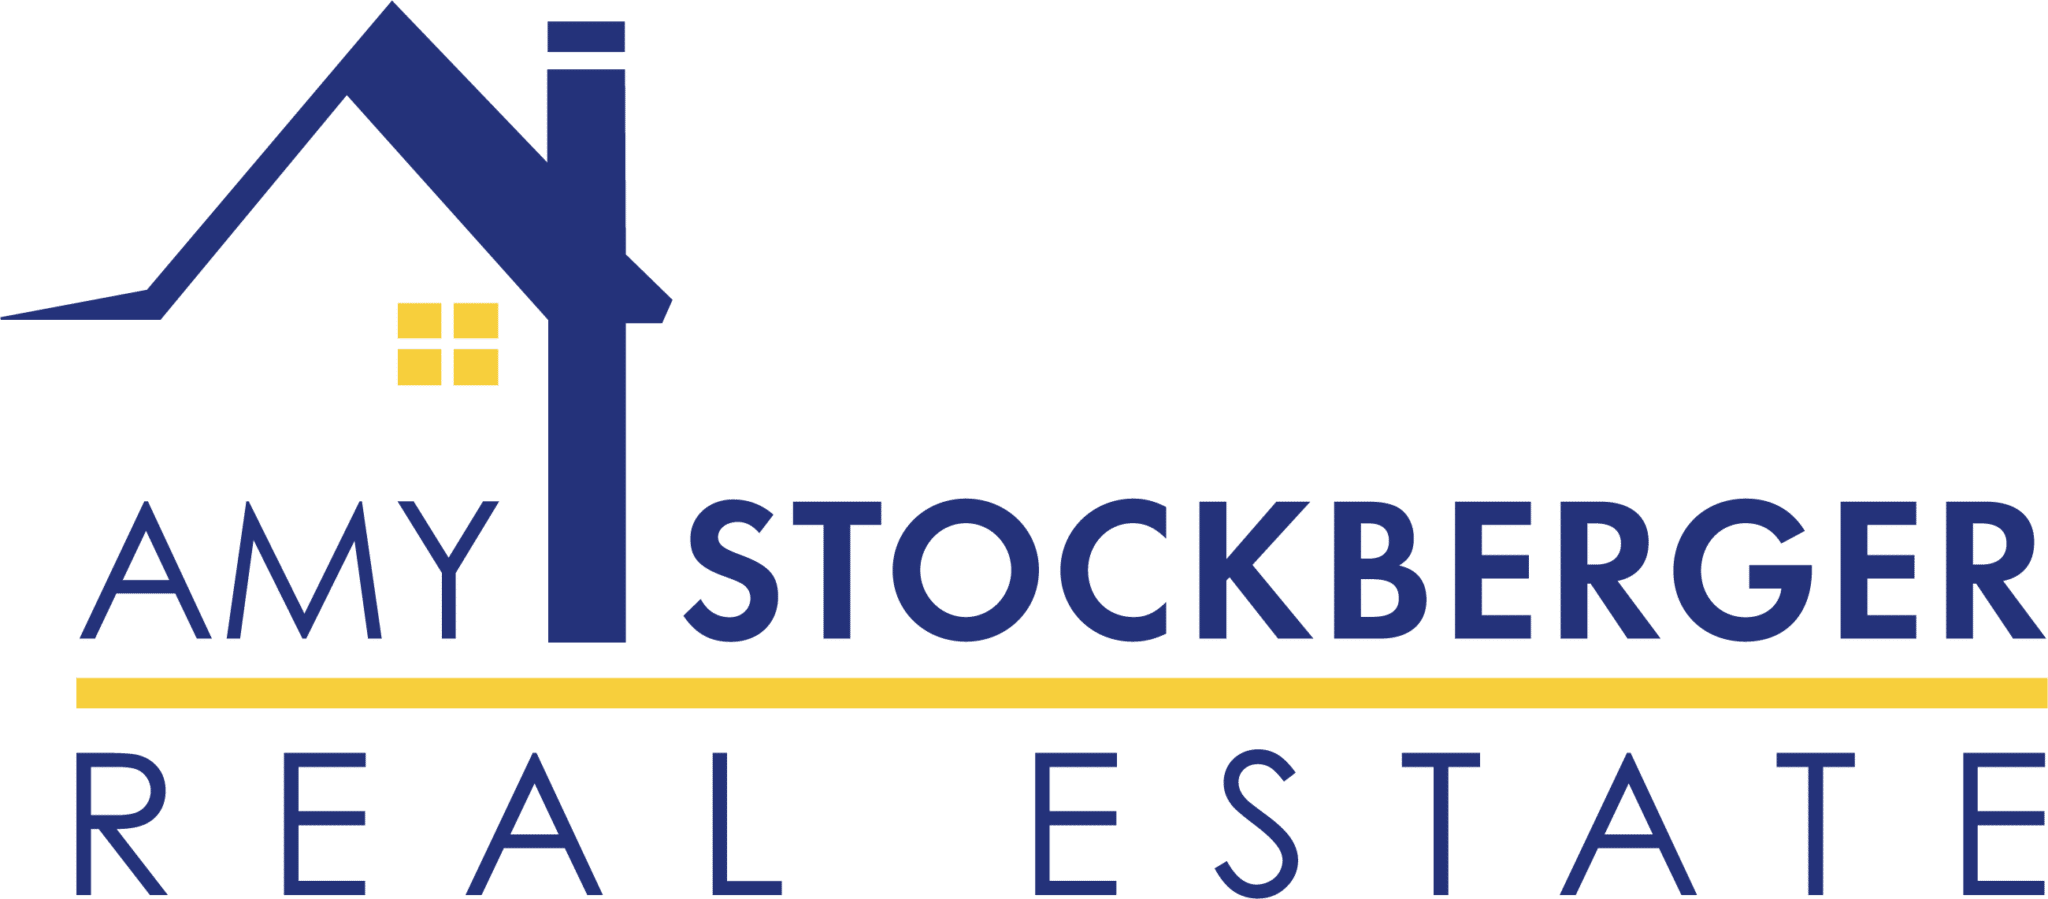 Amy Stockberger Real Estate Team